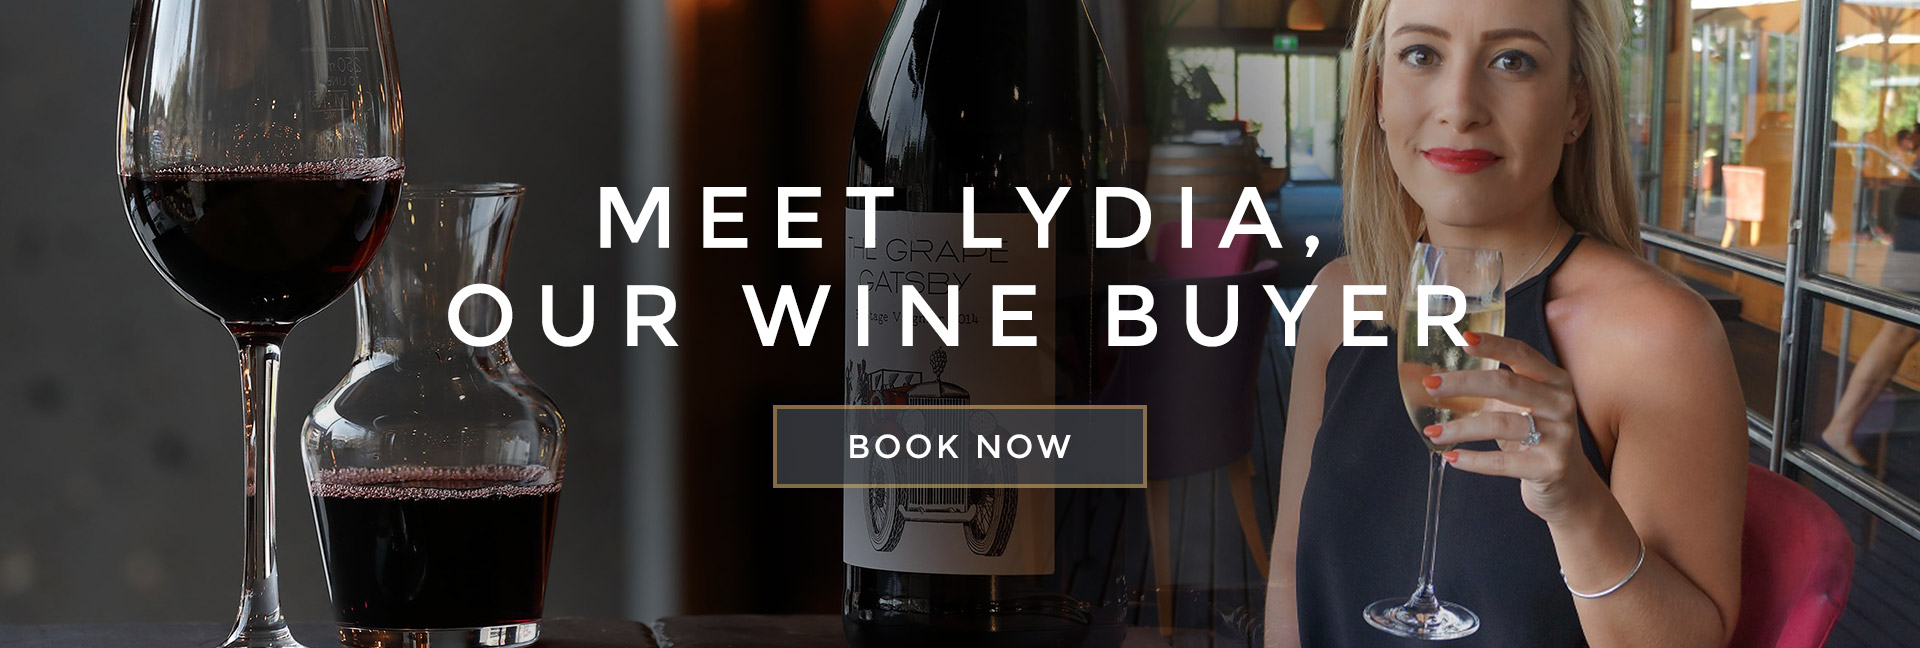 Meet Lydia, our wine buyer at All Bar One